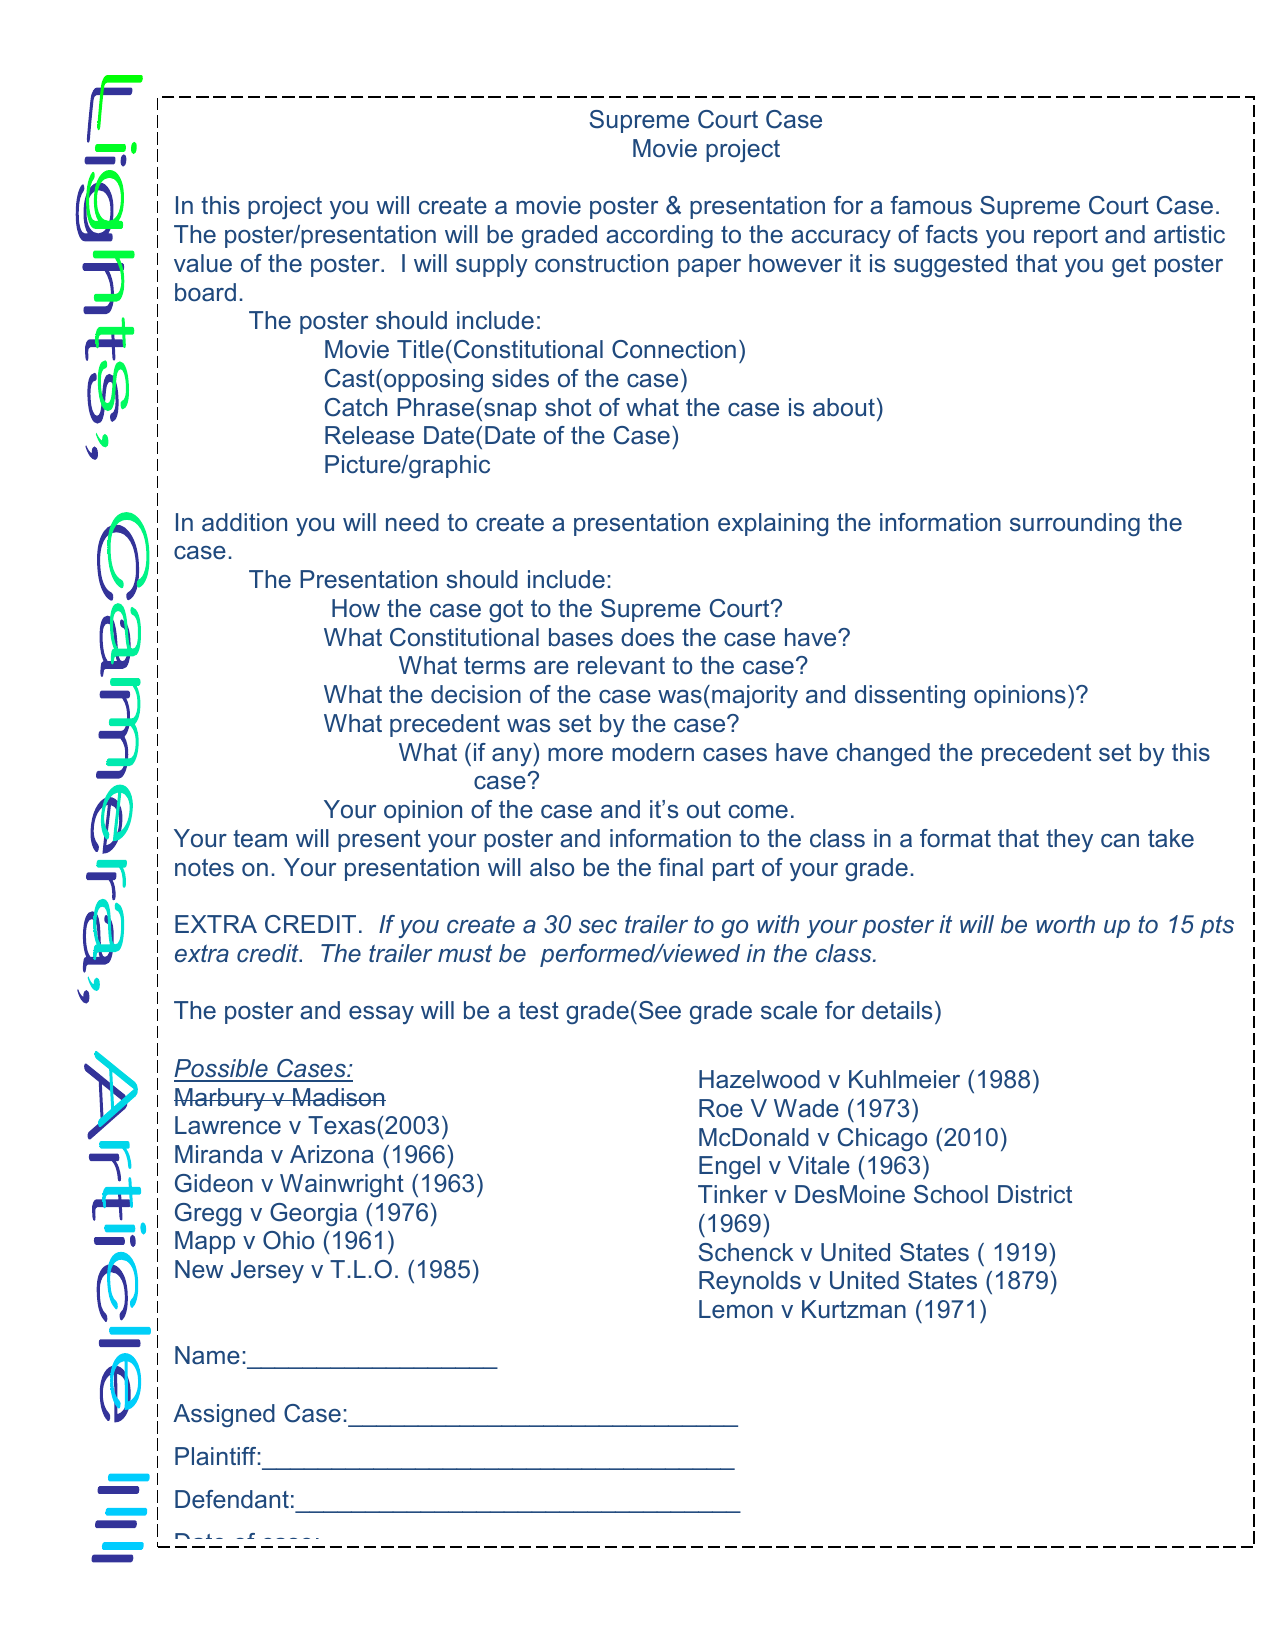 roe vs wade essay argumentative essay on abortion pro life or pro  supreme court movie poster amendments